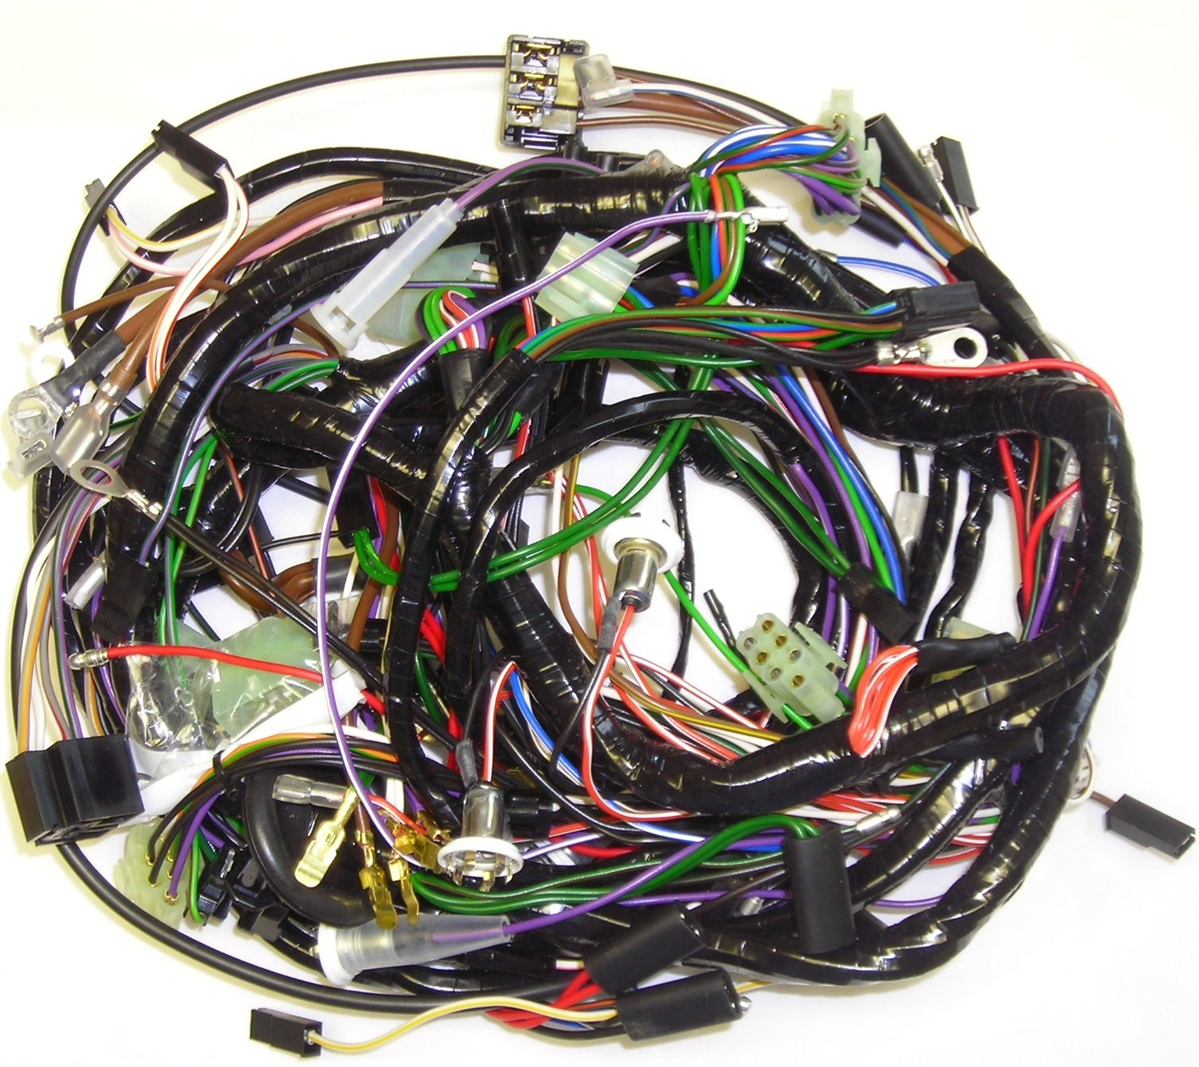 1531 2?1354102943 spitfire1500 main wiring harness Wiring Harness Diagram at crackthecode.co